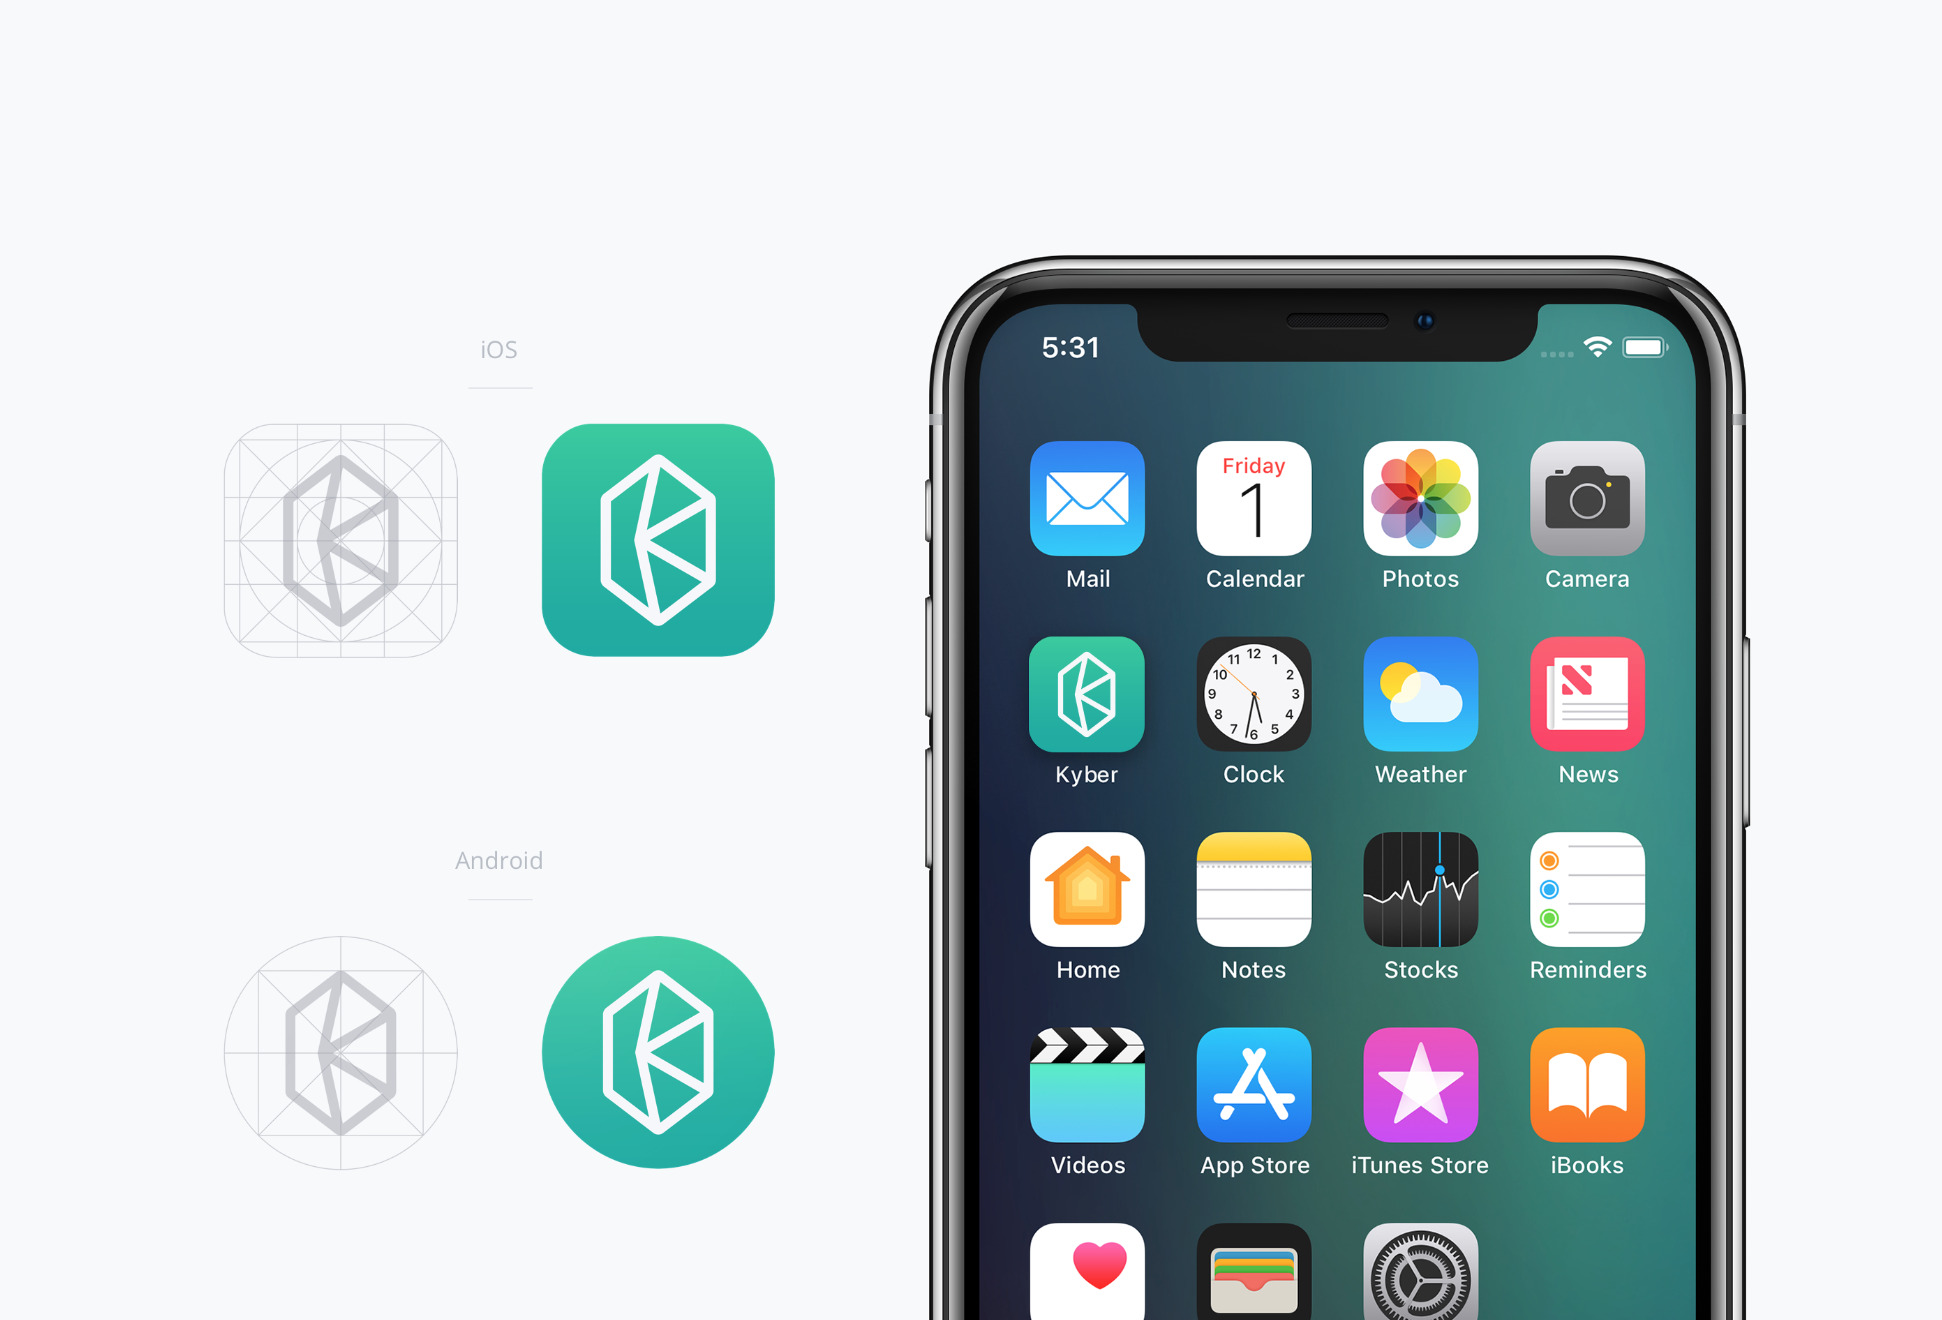 kyber network app icons